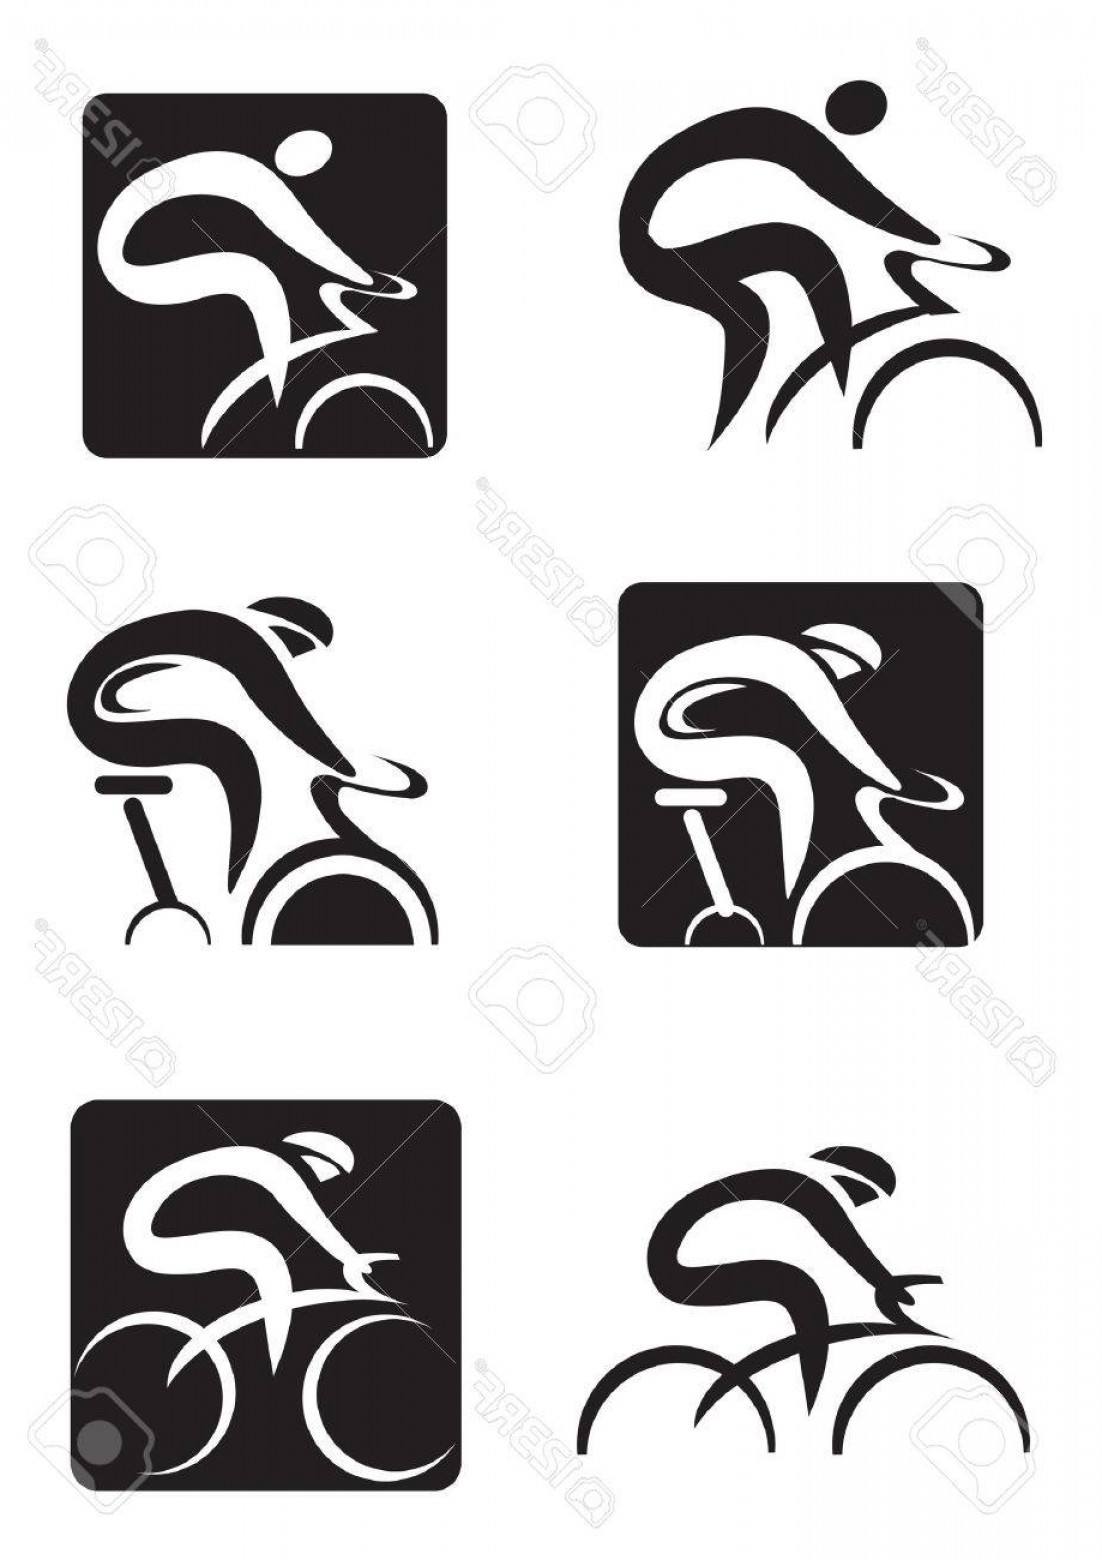 1102x1560 Photostock Vector Set Of Black Icons Of Spinning And Cycling